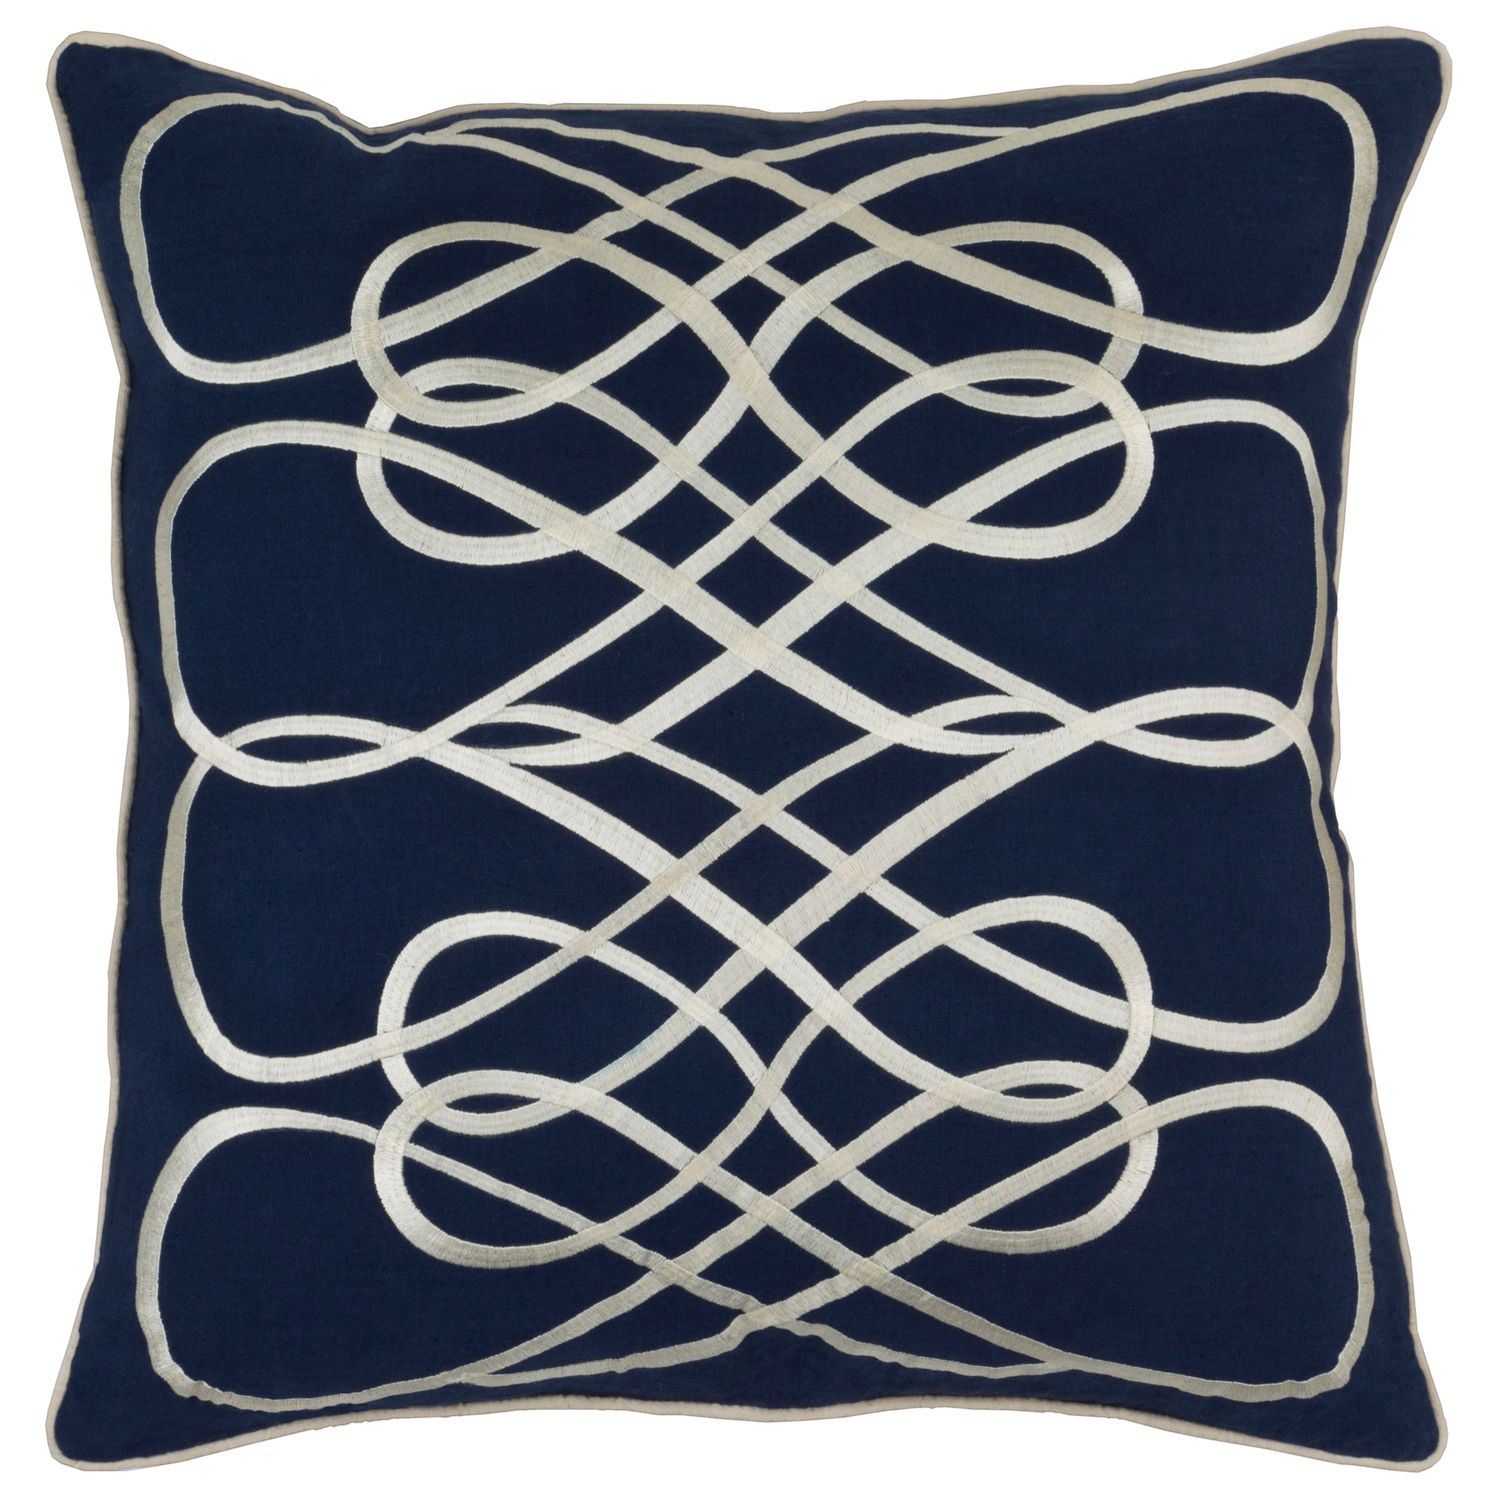 Surya Leah Navy Decorative Pillow @Laylagrayce